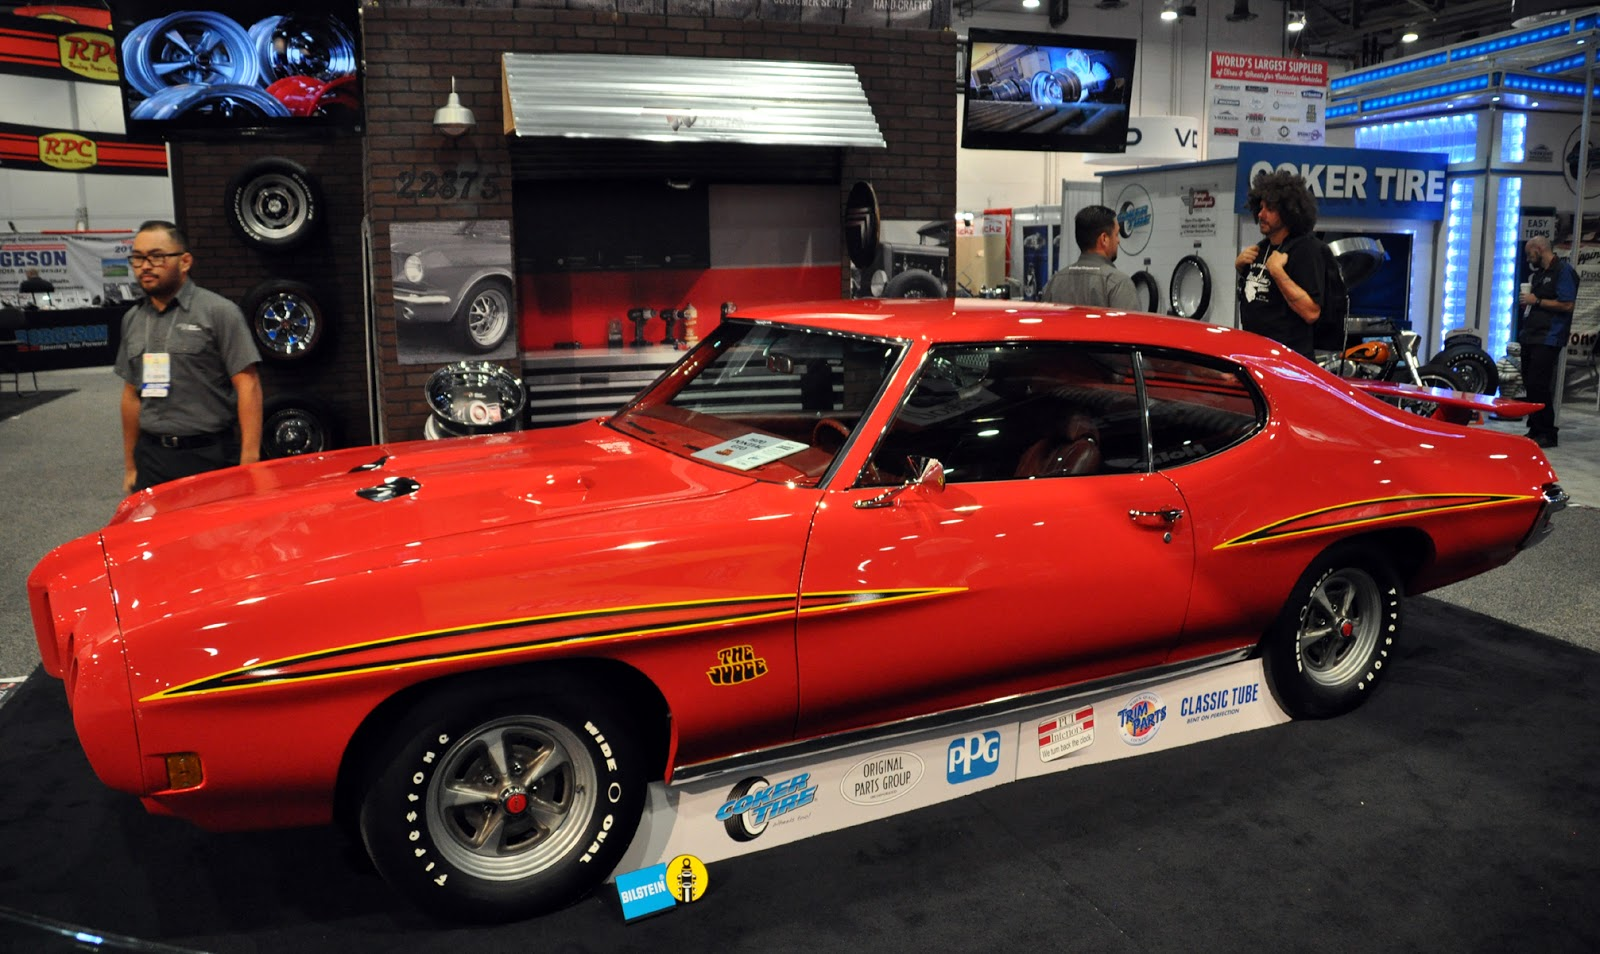 Great Rarely Seen Cool Old Muscle Cars That I Wish Were Brought To SEMA More, A  Judge GTO And A Chevelle